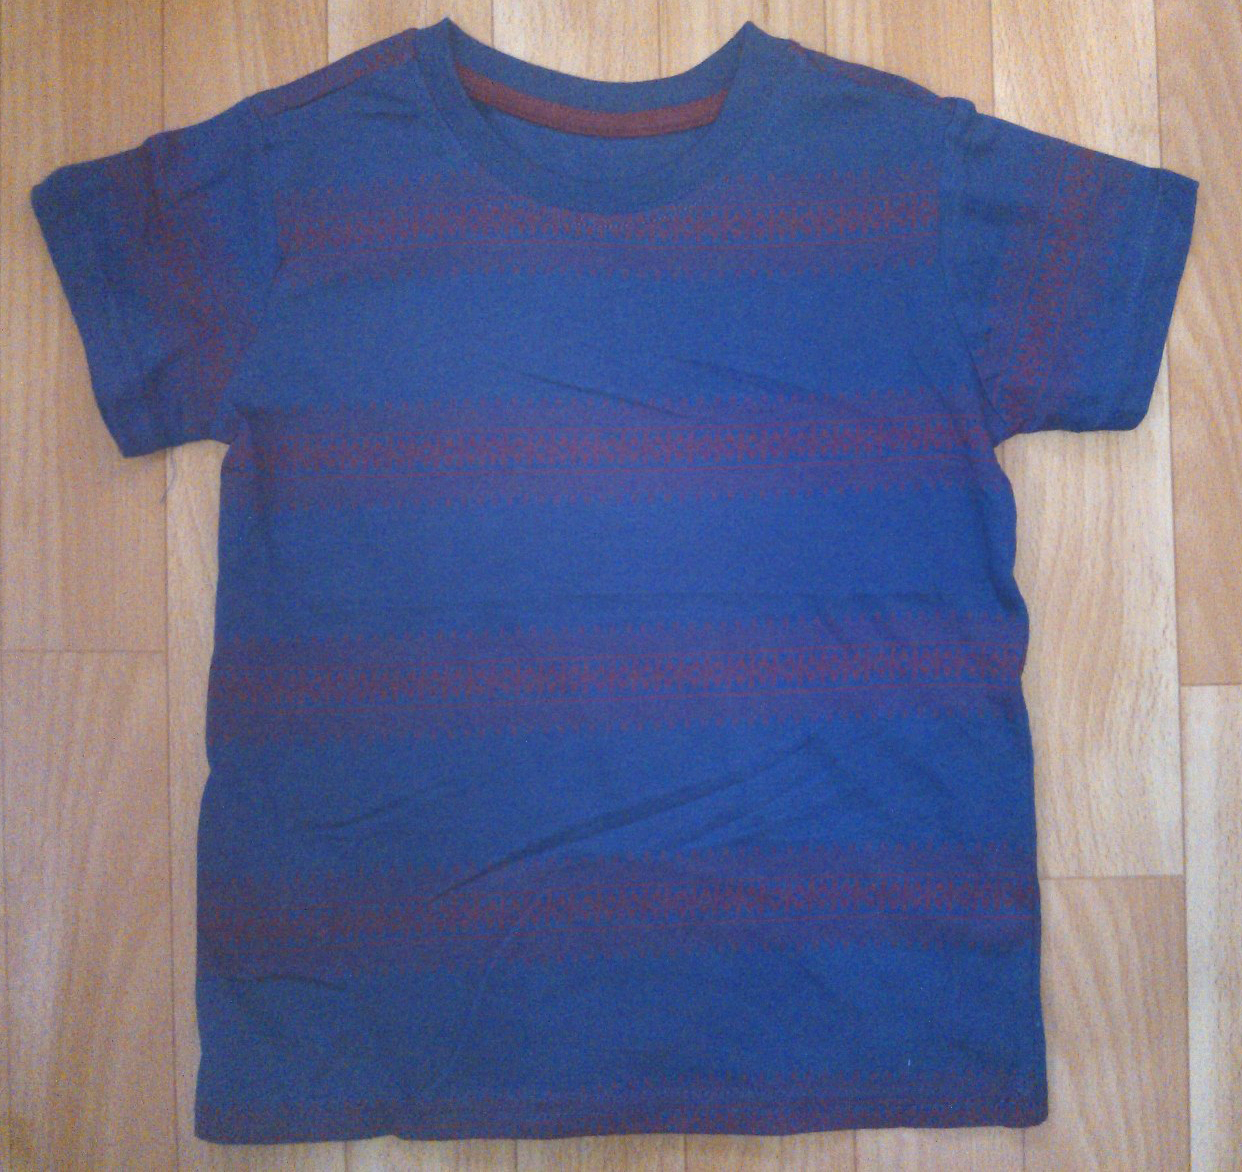 Boys Tops and T-Shirts Size 4 and Up. Boys' tops and T-shirts in size 4 and up include a variety of sleeve styles and fabric types that can be suited to active and dress-up occasions. Boys' tops and T-shirts are also available in a wide range of colors, designs, and prints. What are some types of tops and tees for boys? T-shirts: T-shirts for kids are typically loose-fitting tops.